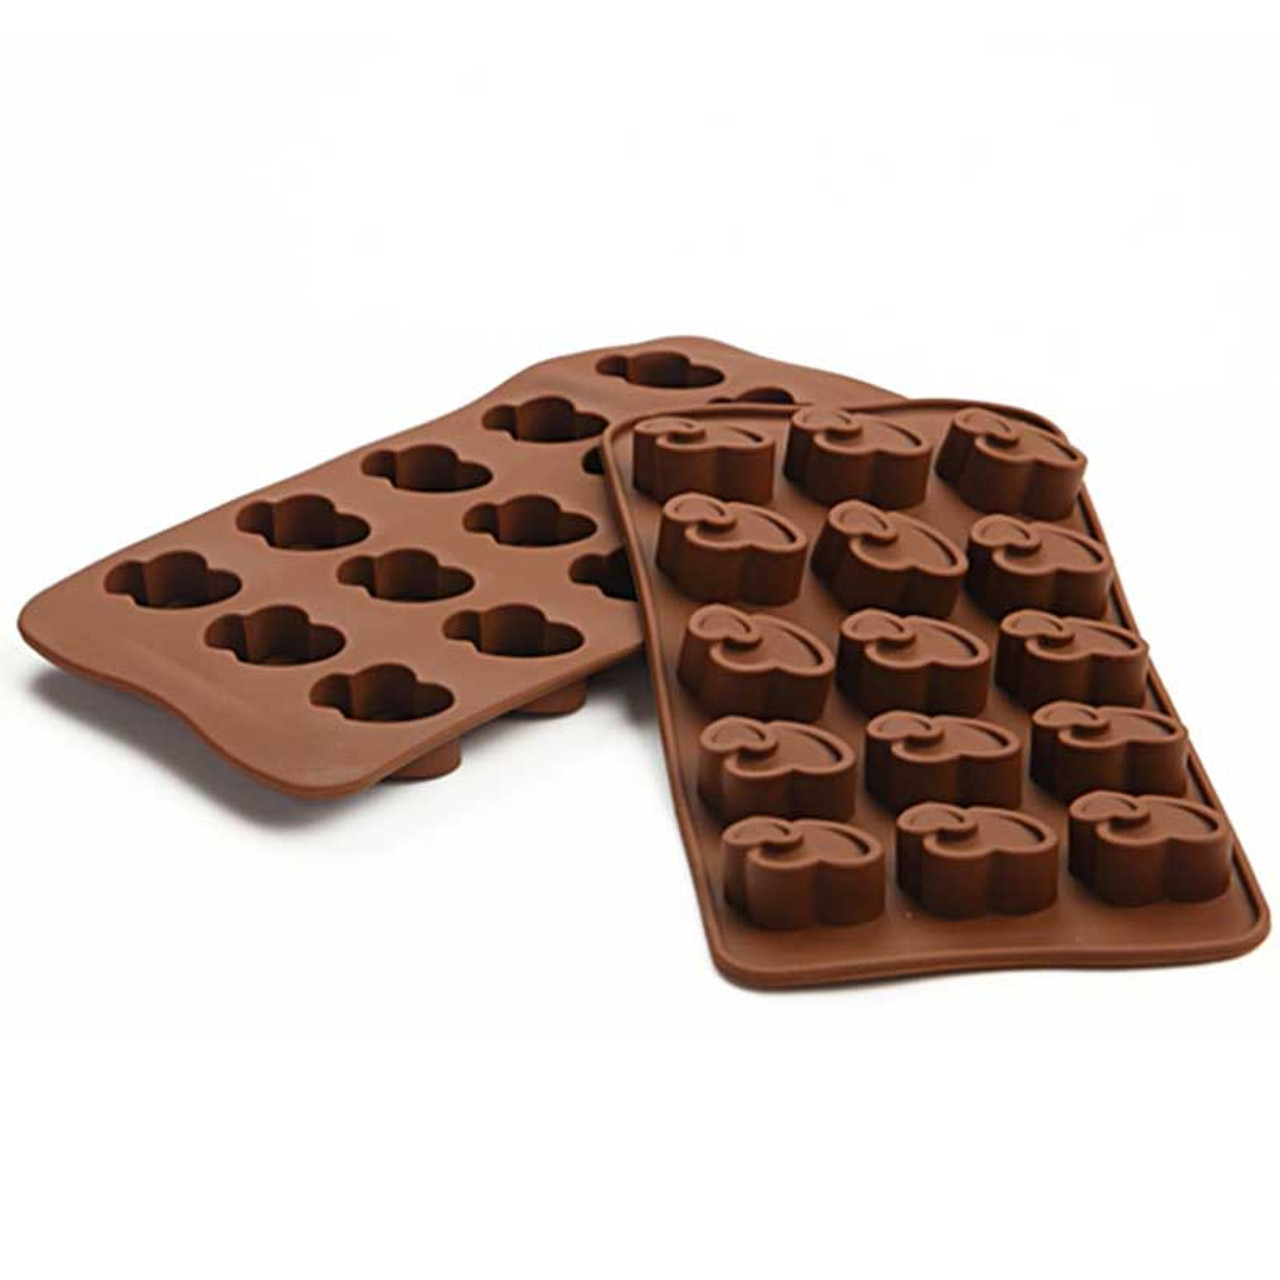 5369d6d02fb2 ... 19 Shape 3D Silicone Numbers Fruit Chocolate Mold Candy Cookie Baking  Fondant Mold Cake Decoration Tools ...